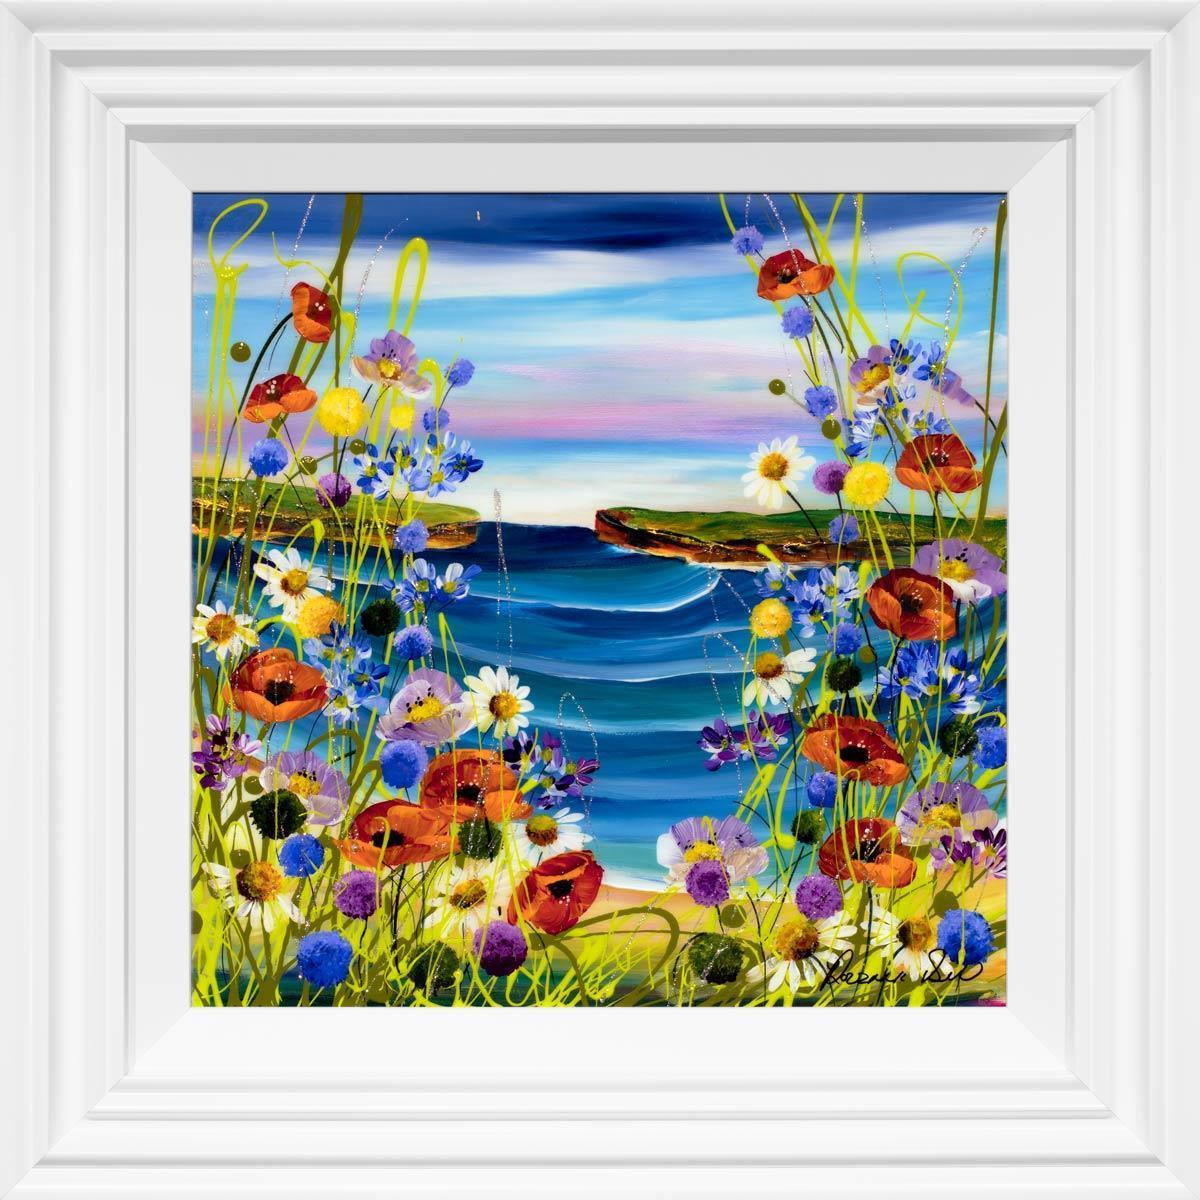 A Stunning Day - Original Rozanne Bell